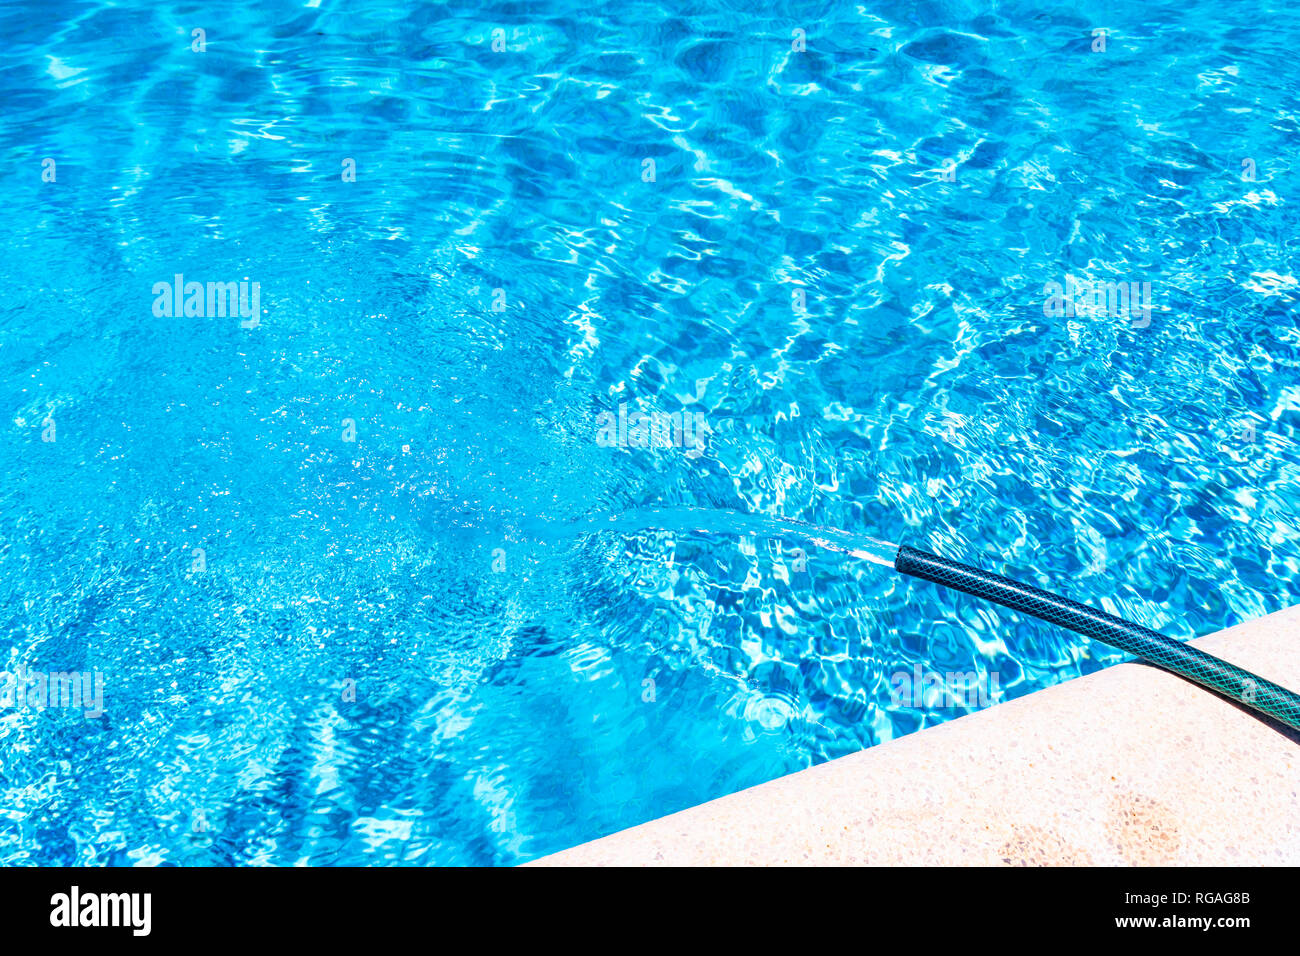 Spain, Andalucía, Málaga, Mondrón, swimming pool being filled by hosepipe - Stock Image